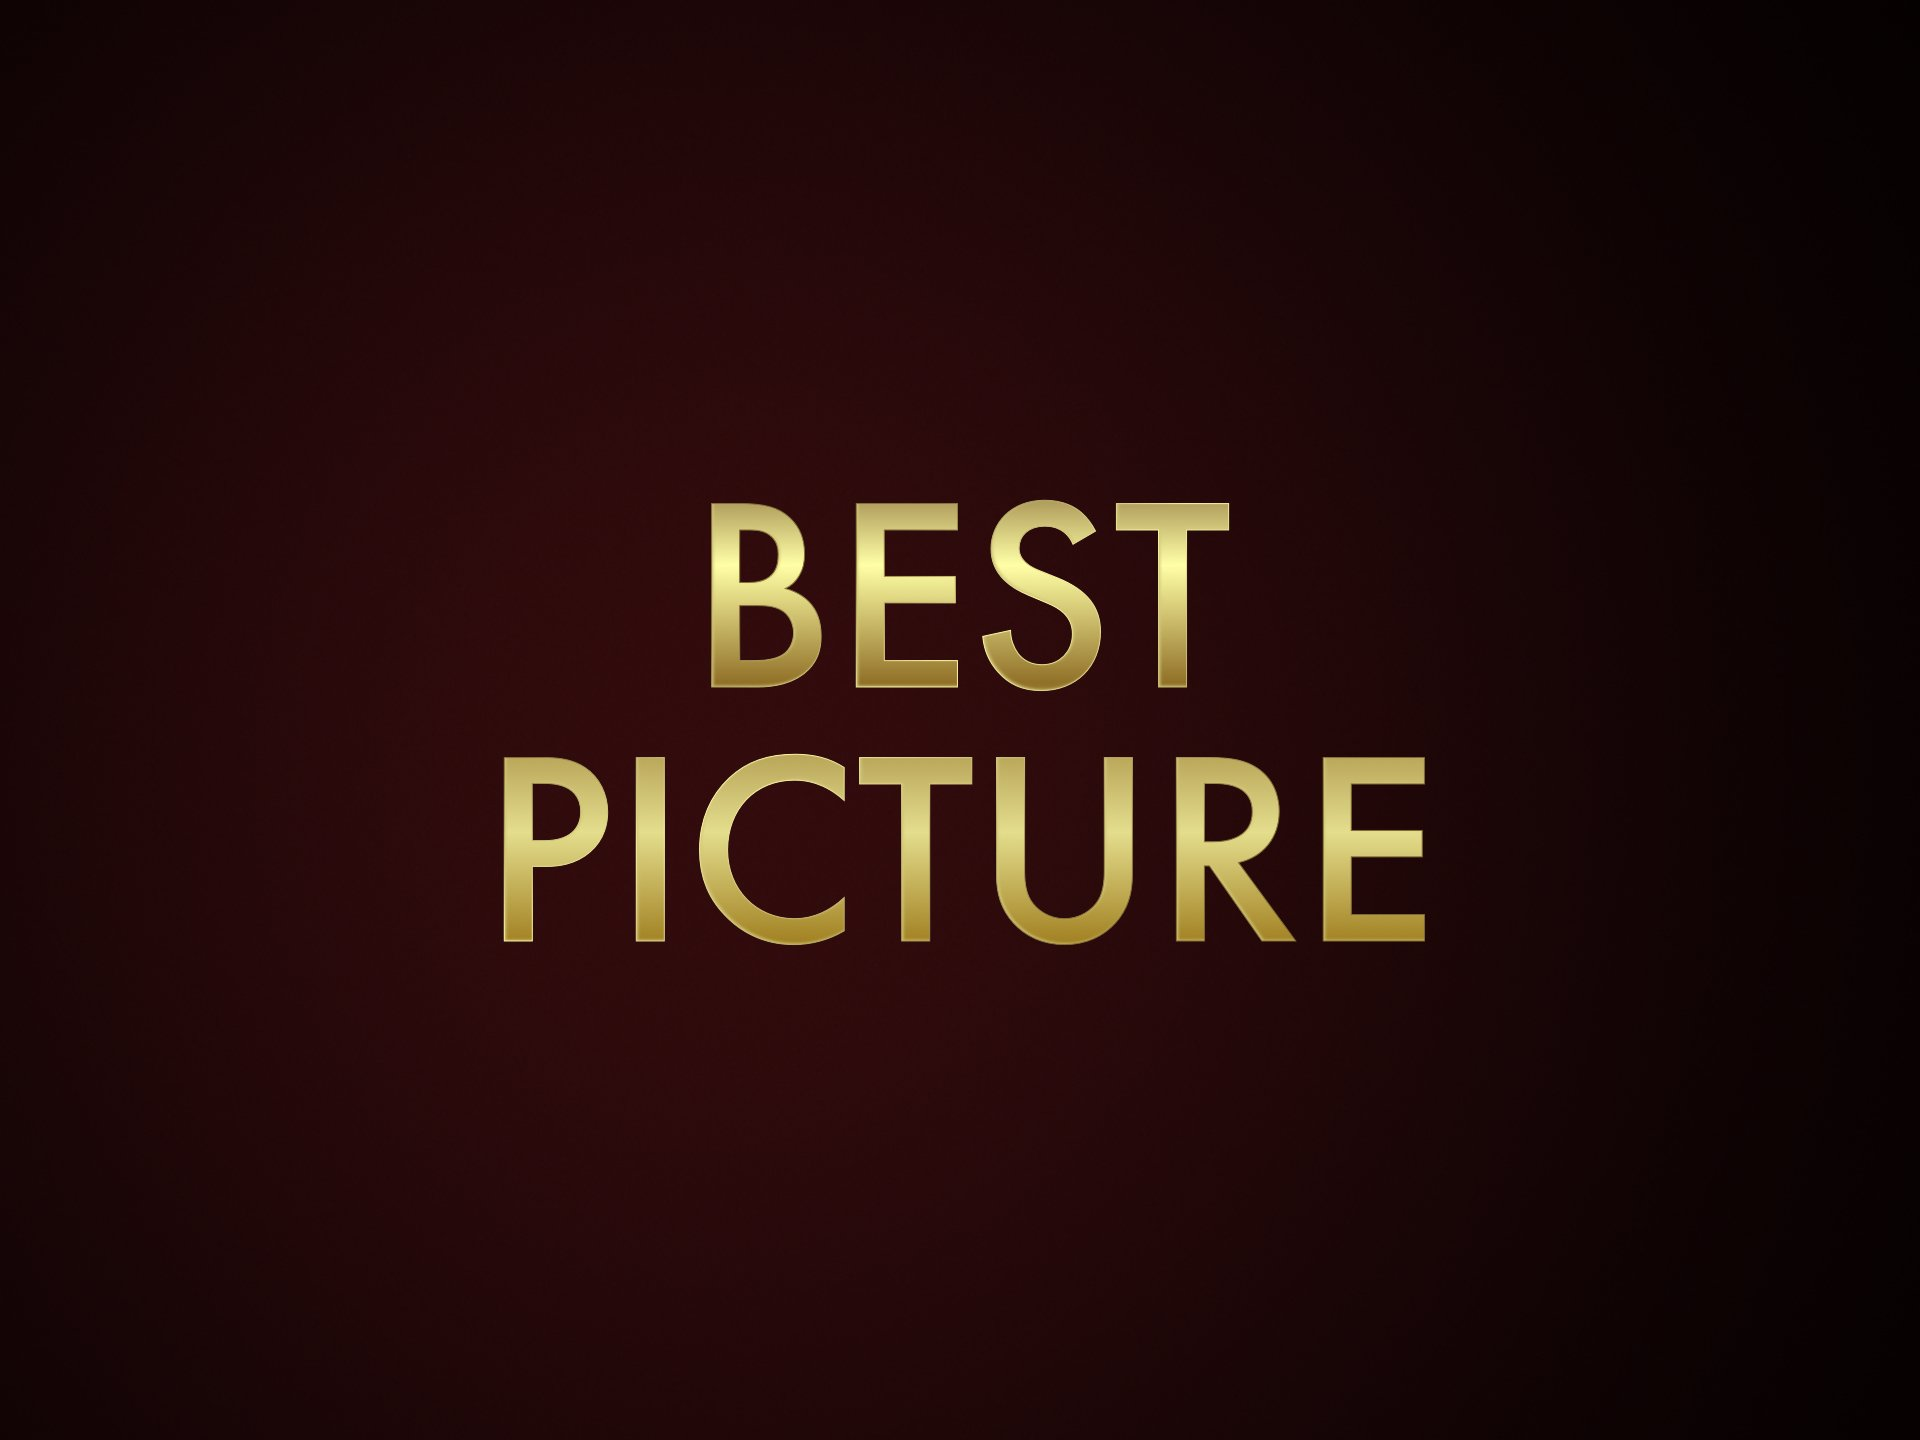 Best Picture Nominations Oscars 2020   Oscars 2020 News 92nd 1920x1440